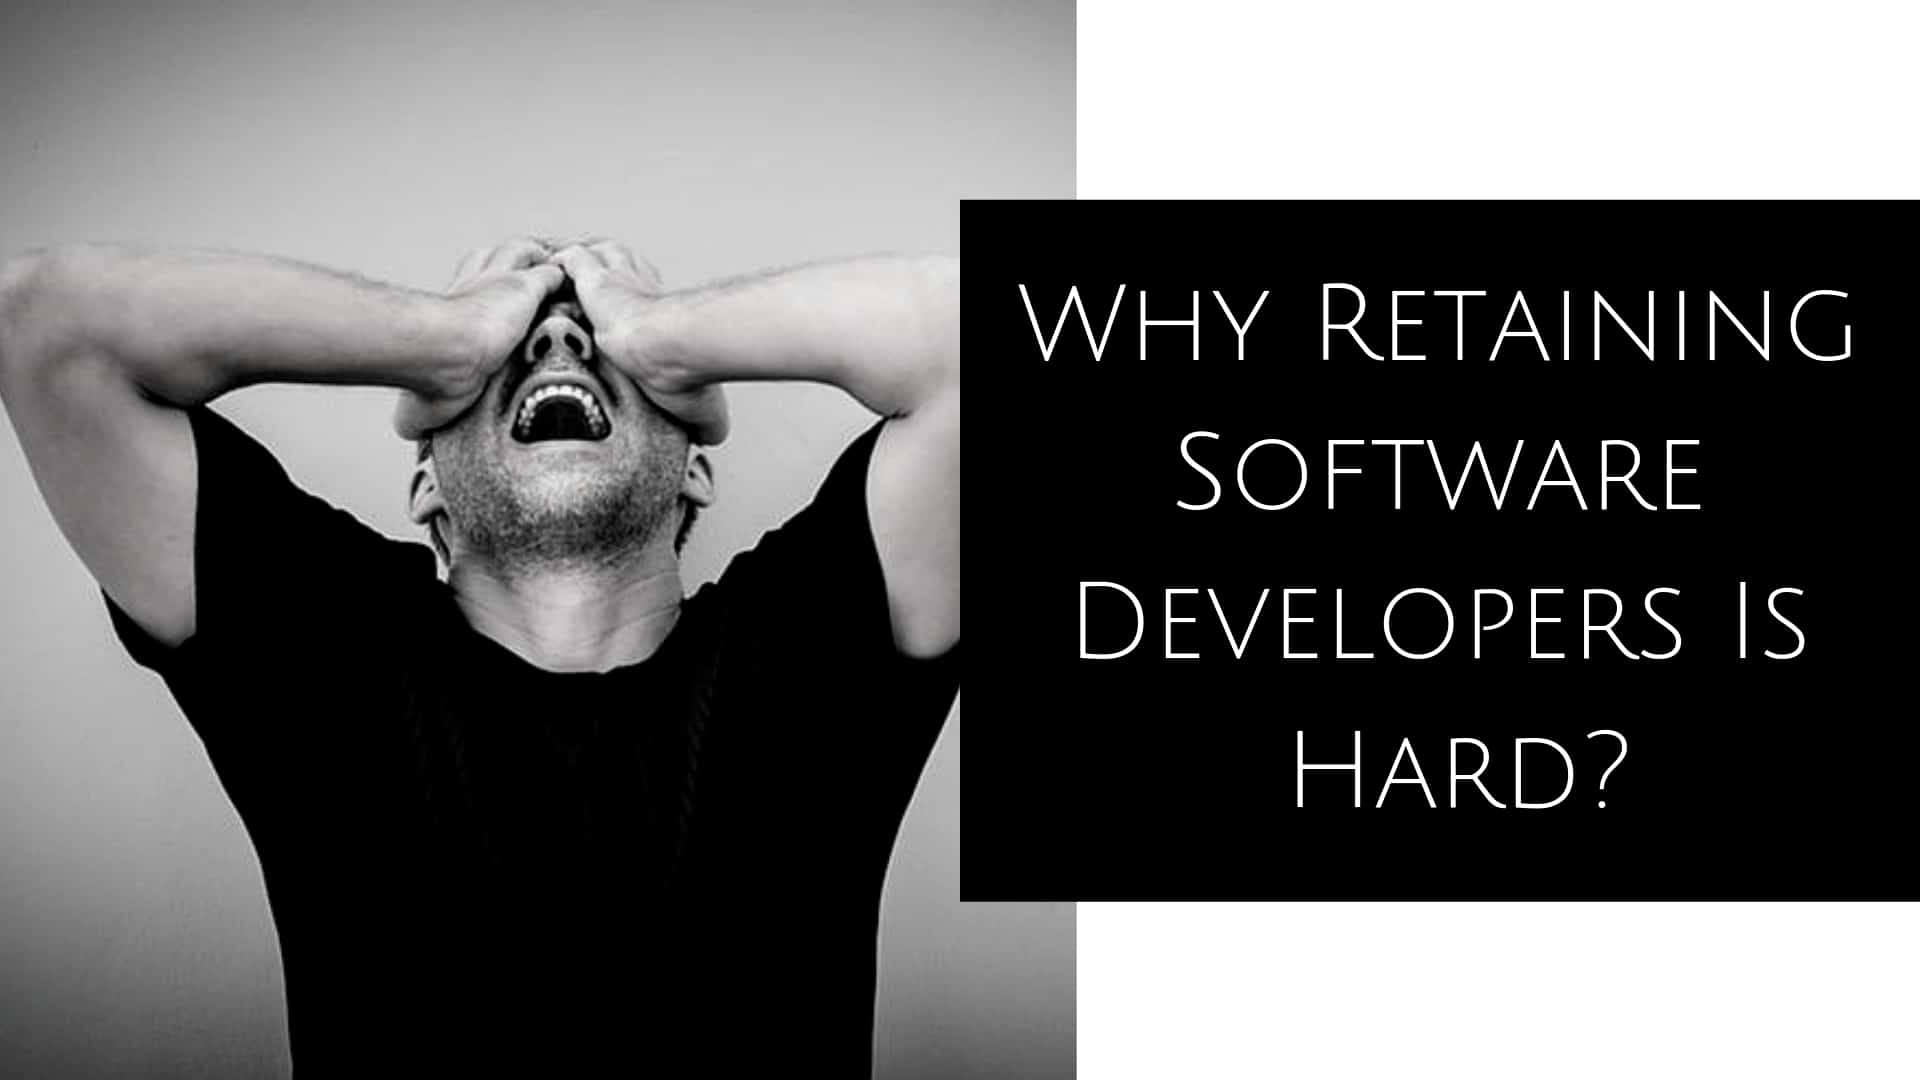 Why Retaining Software Developers Is Hard?